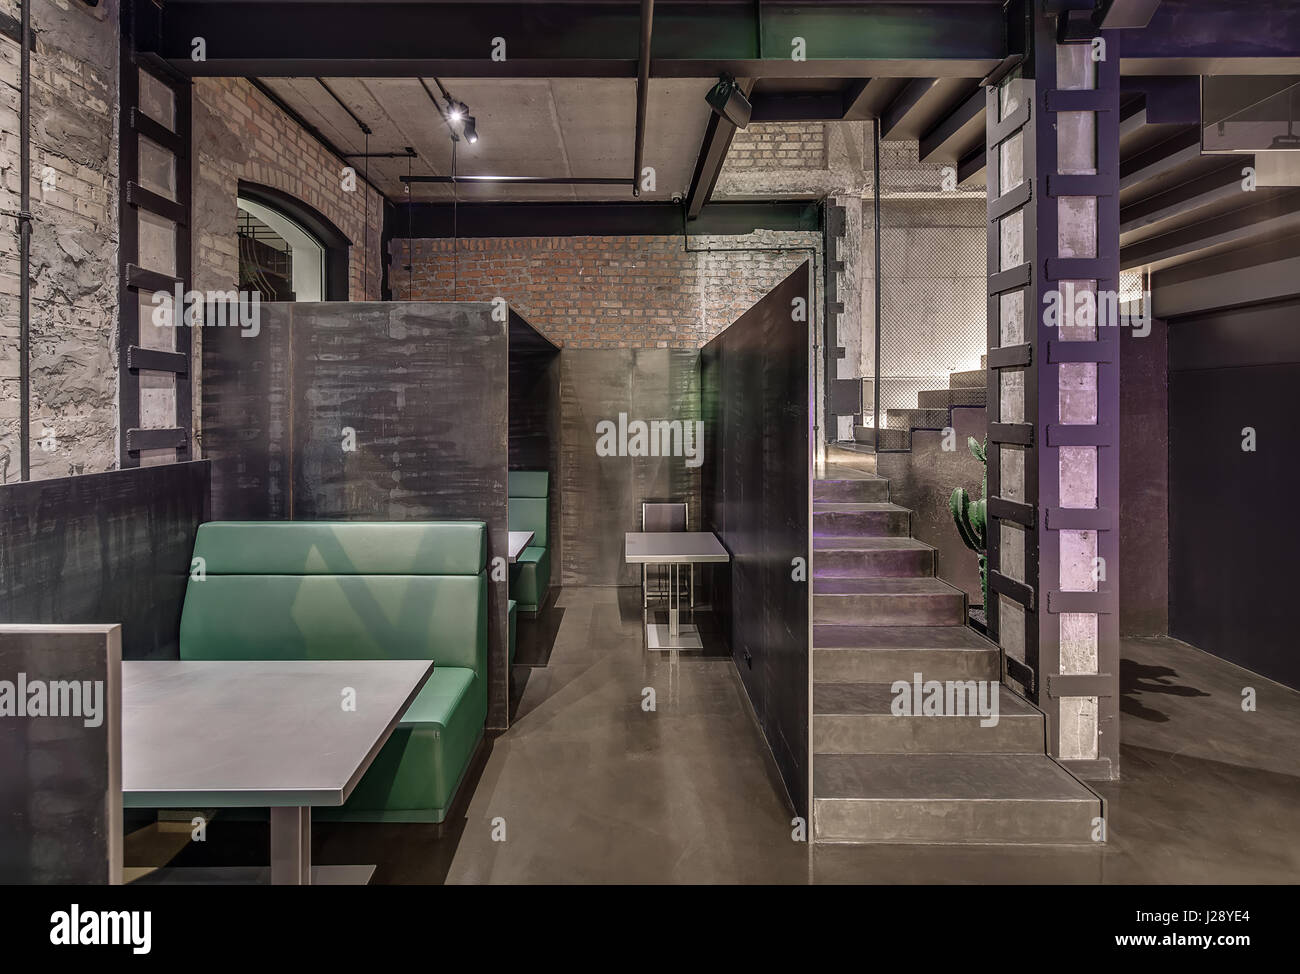 loft style cafe with brick and concrete walls column stairway with reticulated partition and glowing lamps there are green sofas with gray tables a - Concrete Cafe Interior